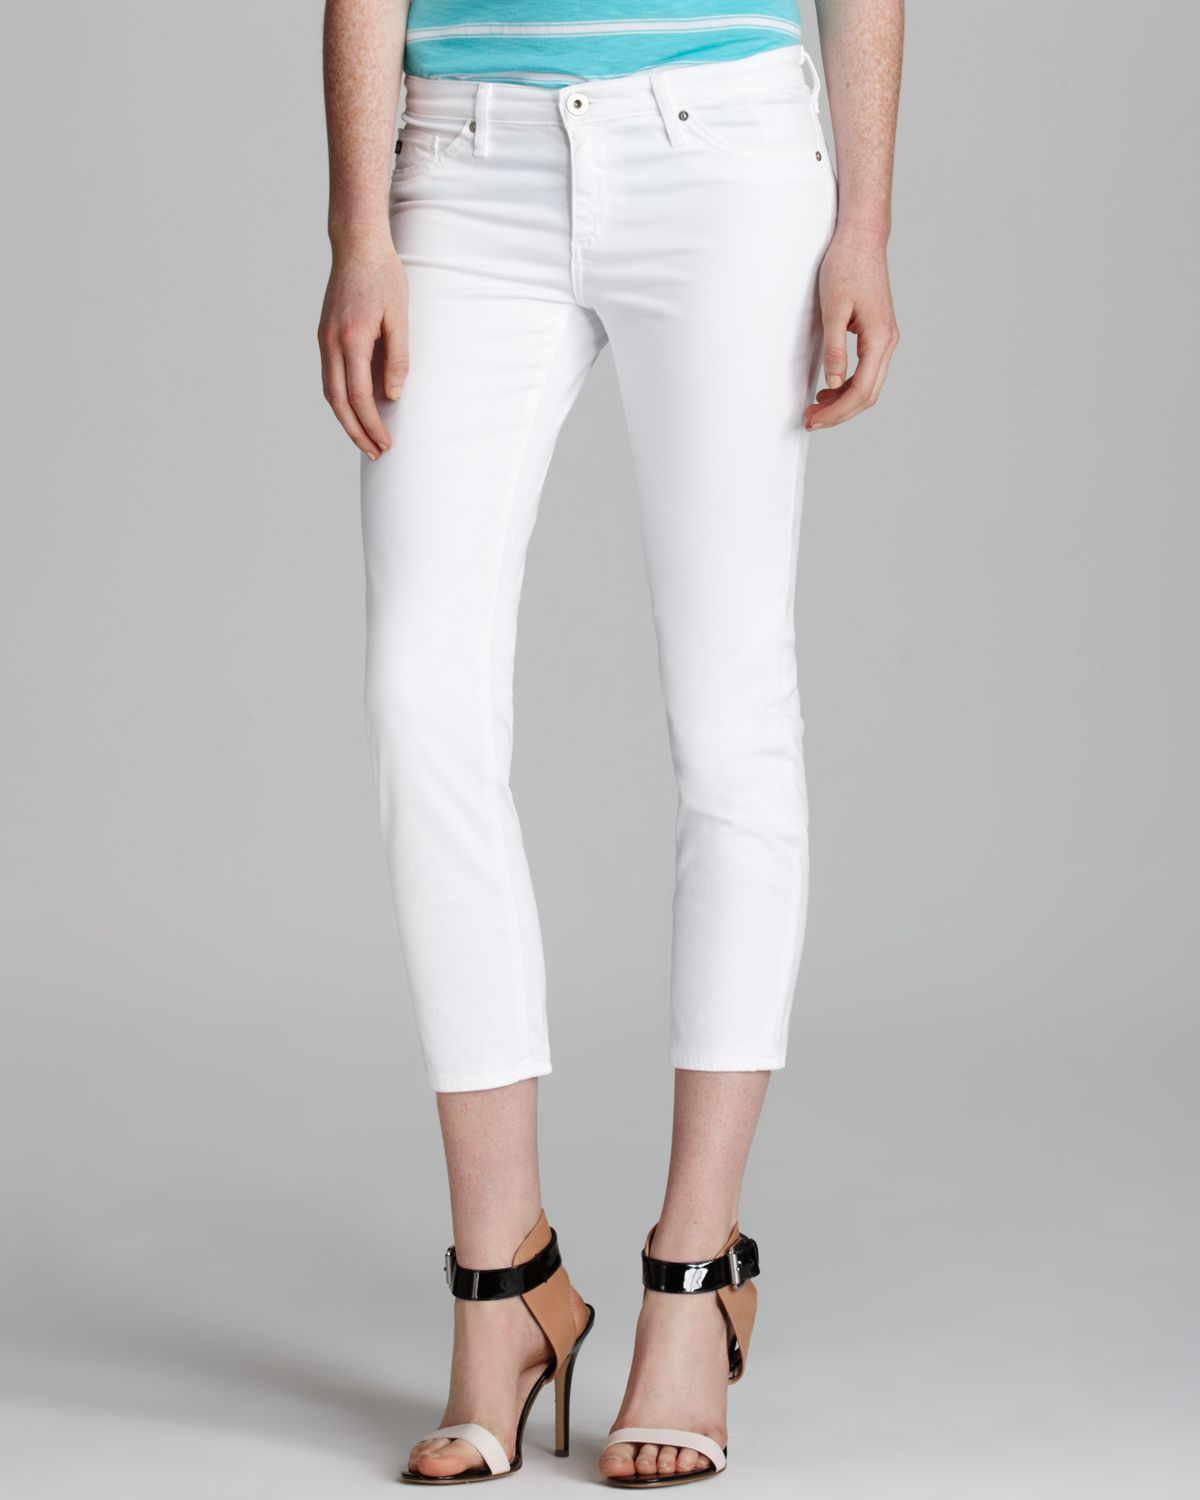 ag jeans adriano goldschmied jeans stilt crop in white in white lyst. Black Bedroom Furniture Sets. Home Design Ideas